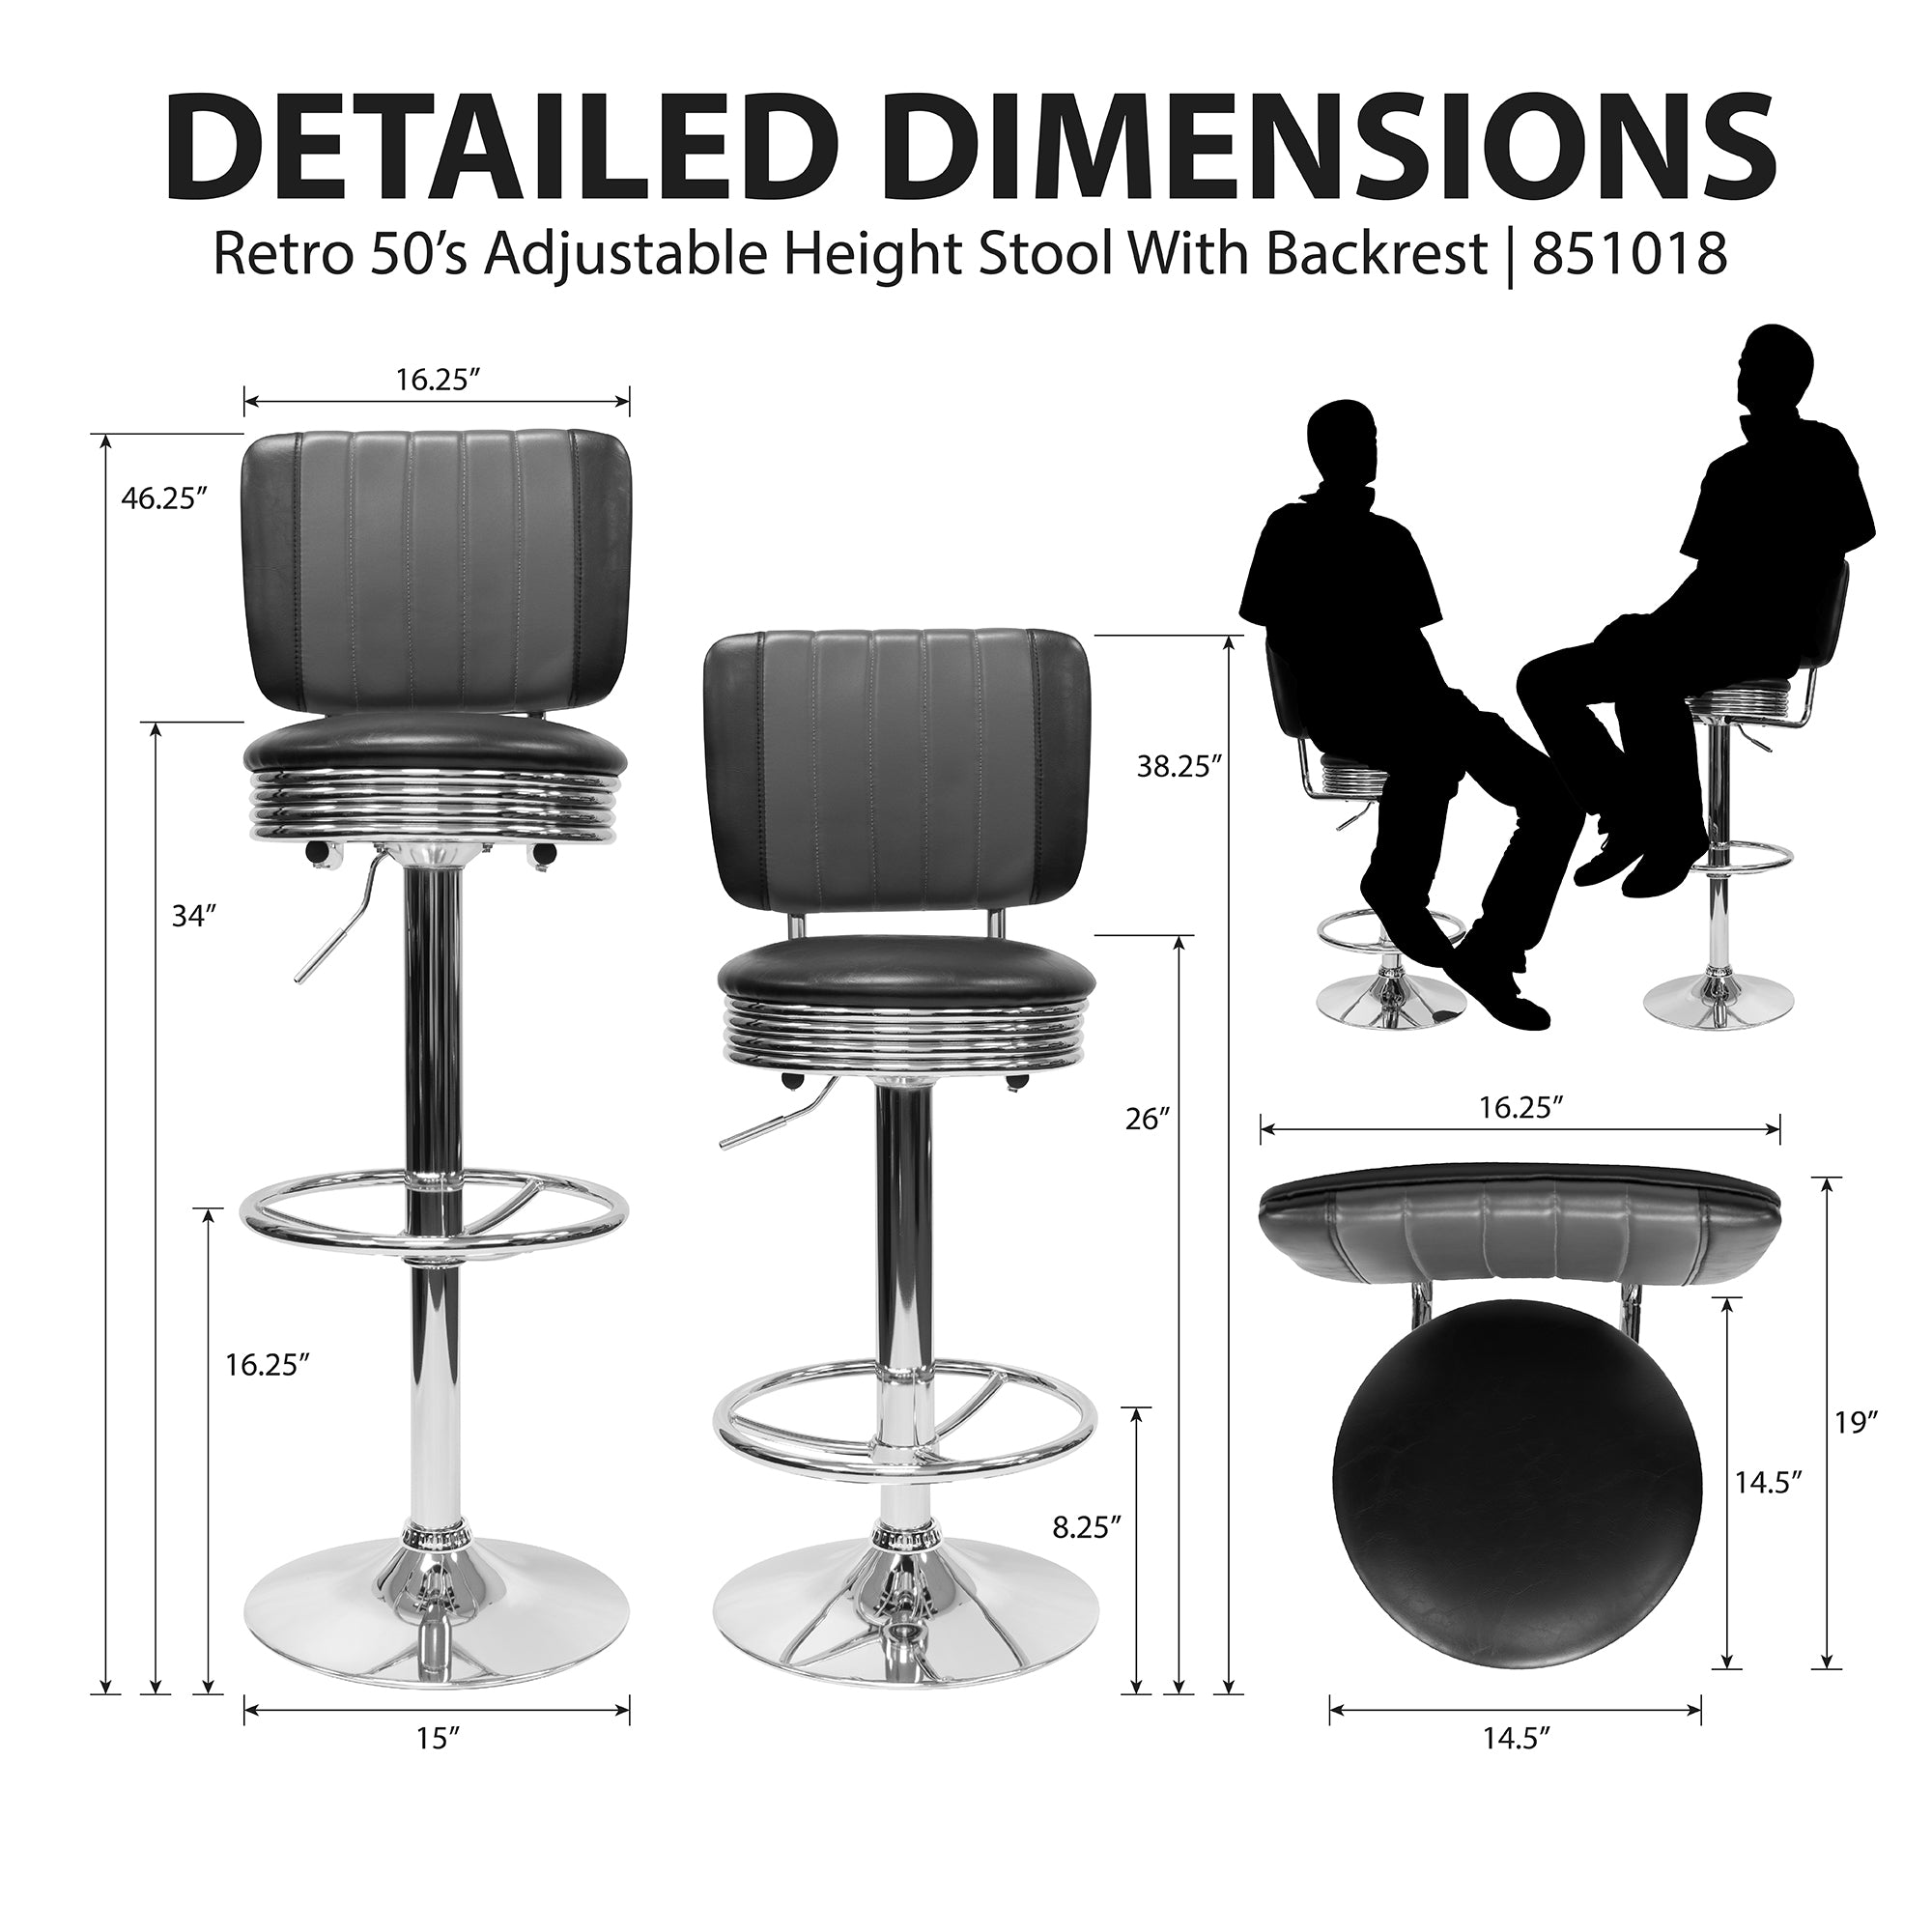 851018 Retro Adjustable Height Stool With Backrest - Dimensions